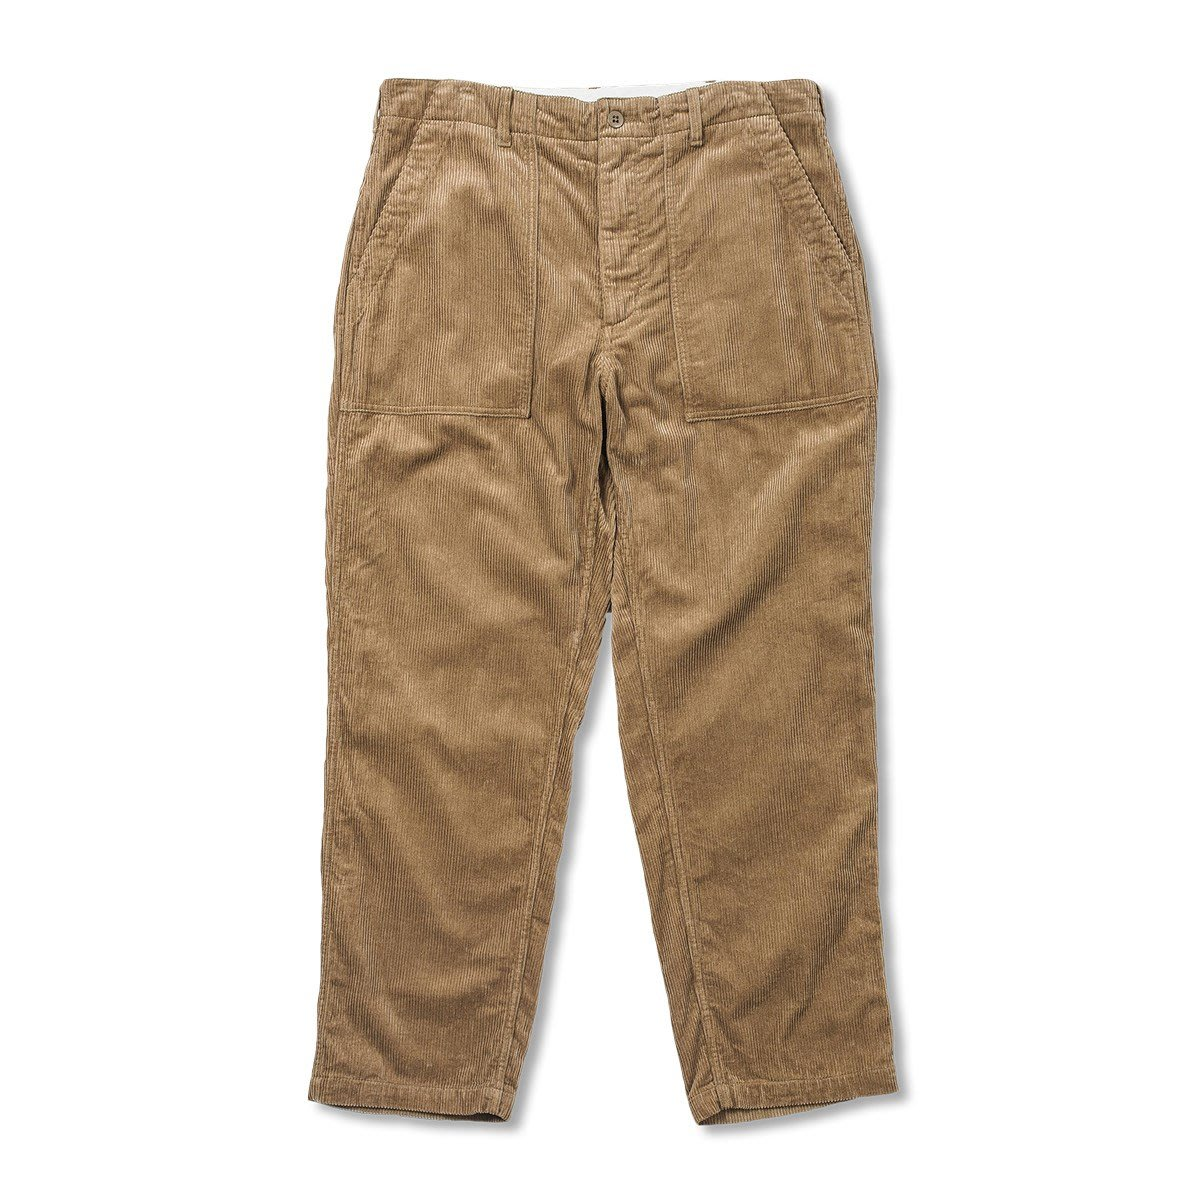 ENGINEERED GARMENTS FW20 Fatigue Pant